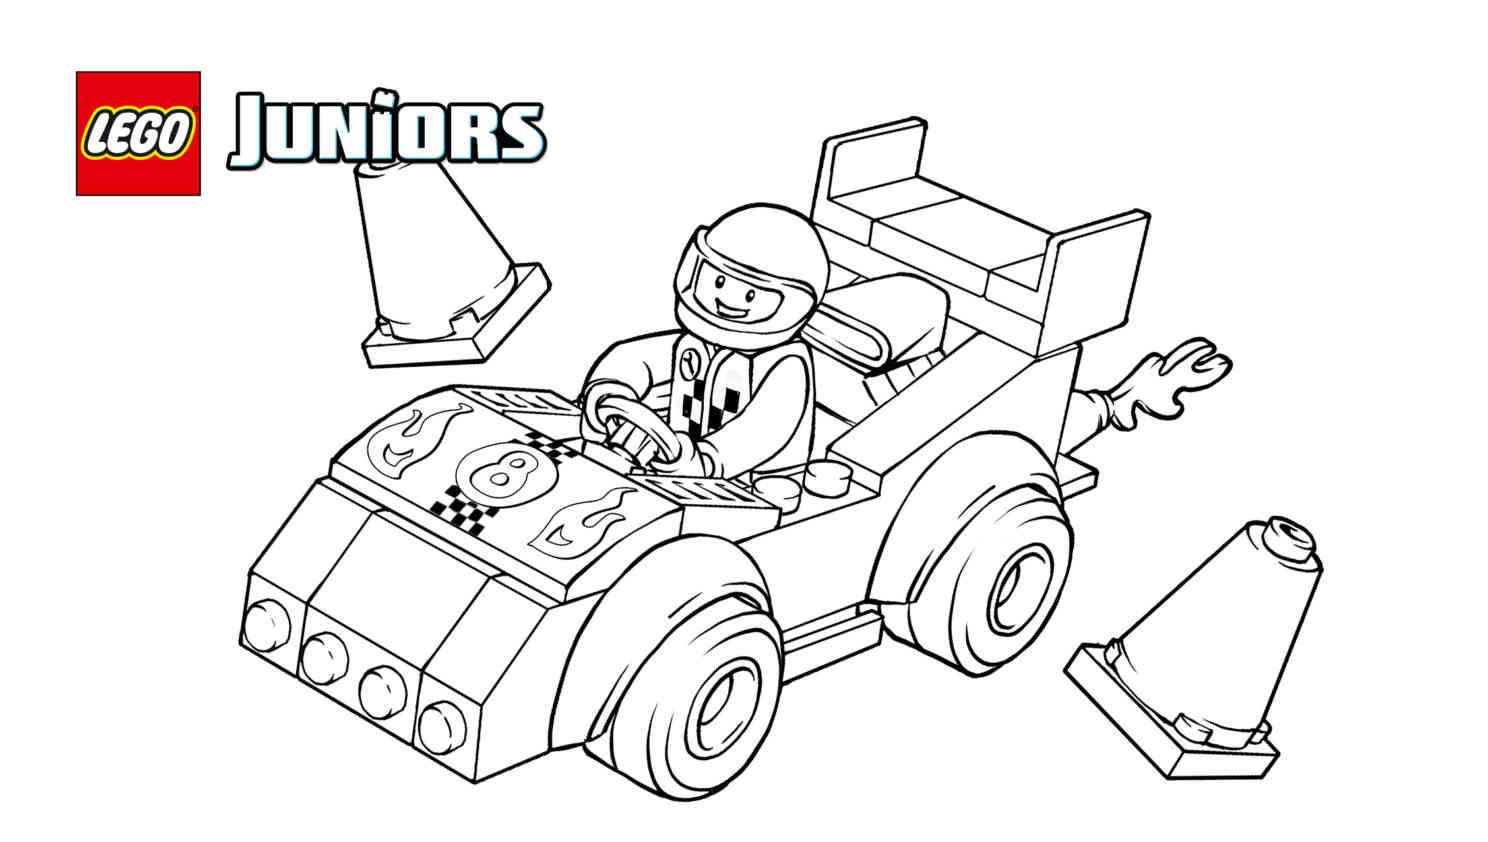 lego 10673 race car rally 1 coloring sheet lego coloring sheets cars coloring pages lego. Black Bedroom Furniture Sets. Home Design Ideas